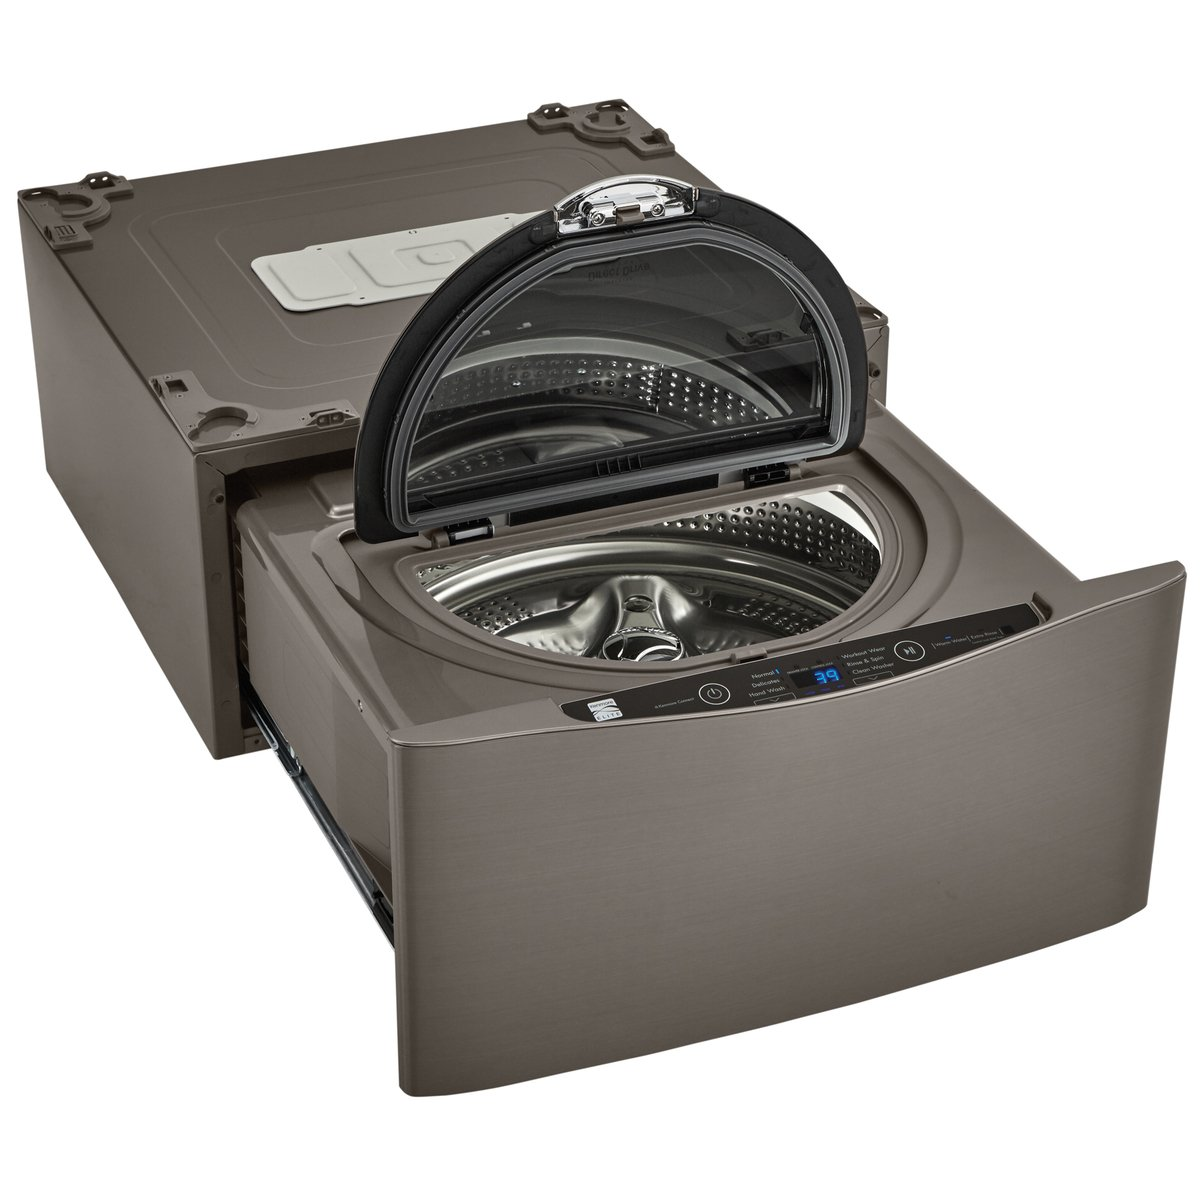 Kenmore Elite 51973 27'' Wide Pedestal Washer in Metallic silver, includes delivery and hookup